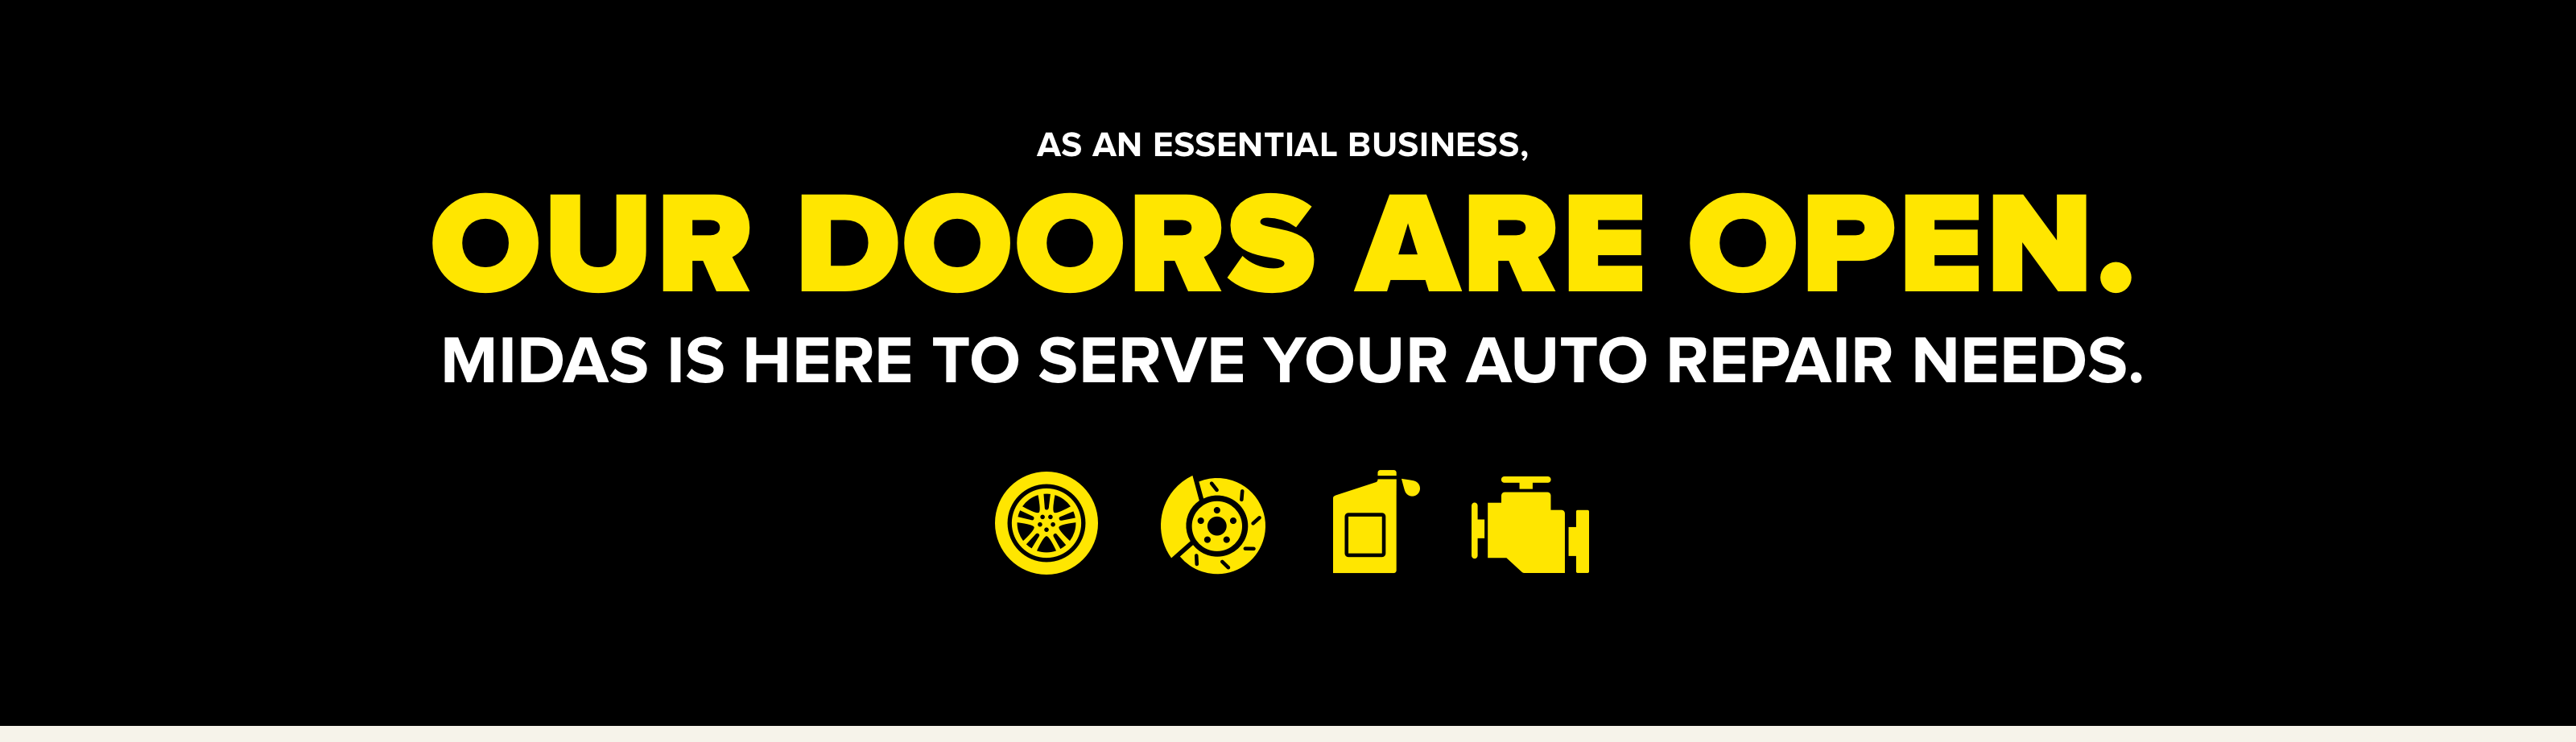 As an essential business, our doors are open. Midas is here to serve your auto repair needs.